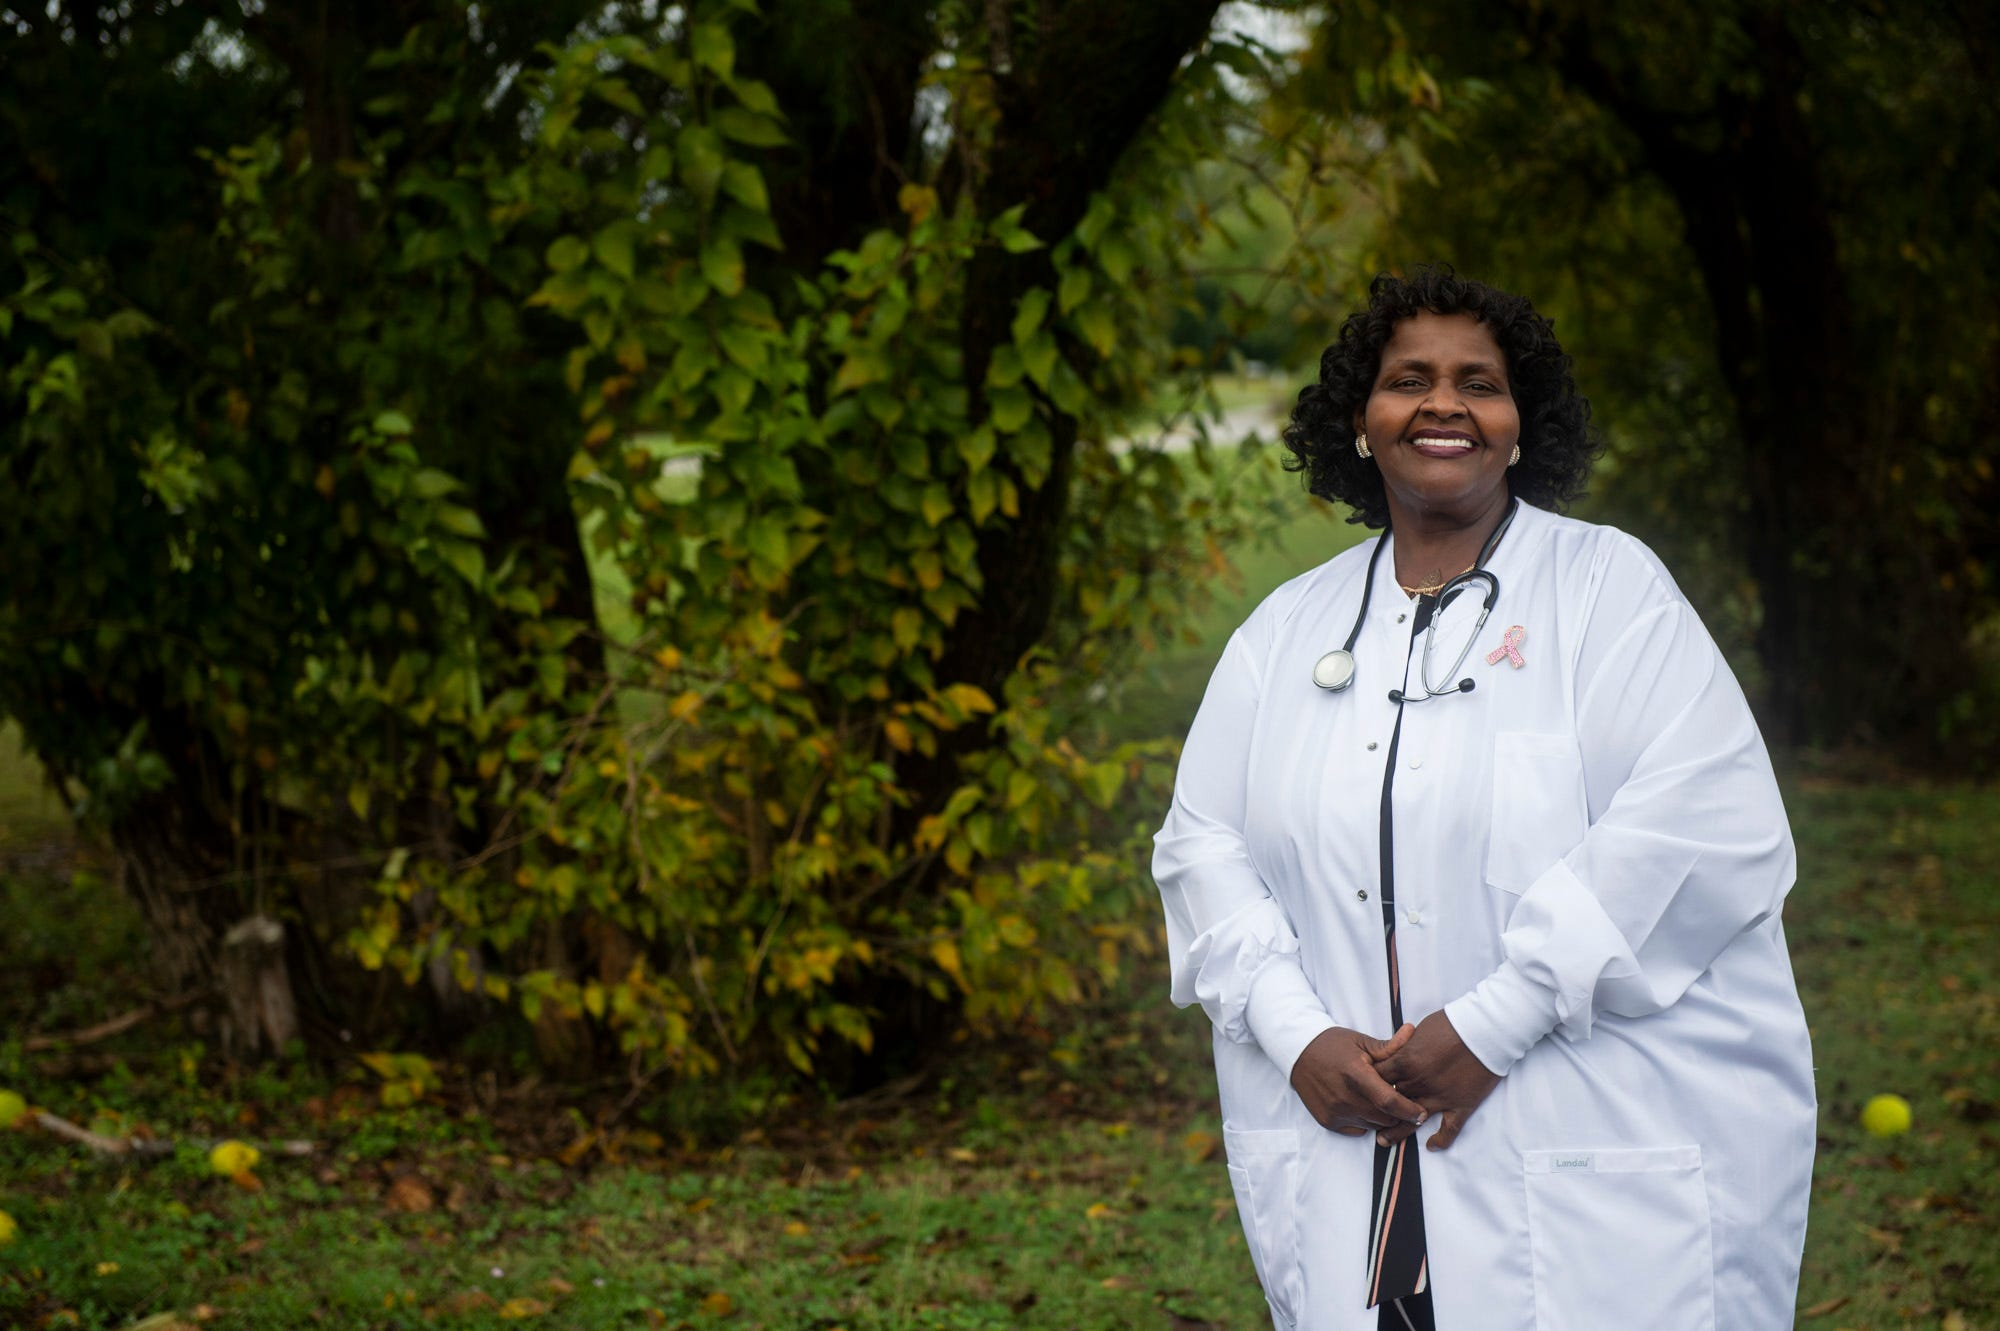 Nurse Linda Gilchrist poses for a portrait in Montgomery, Ala., on Sunday, Oct. 11, 2020.